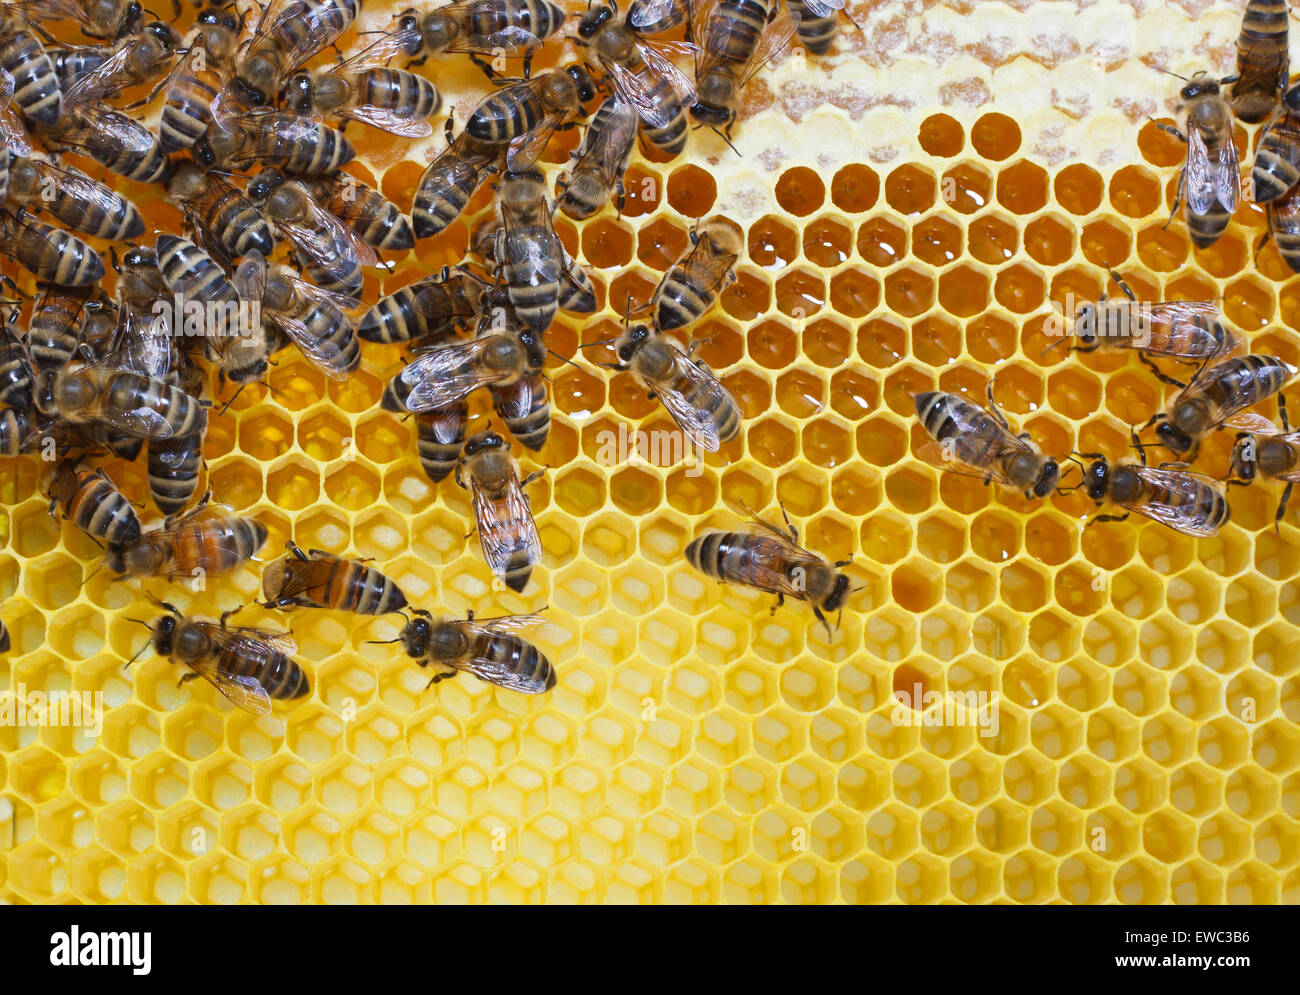 Working bees on honey cells - Stock Image